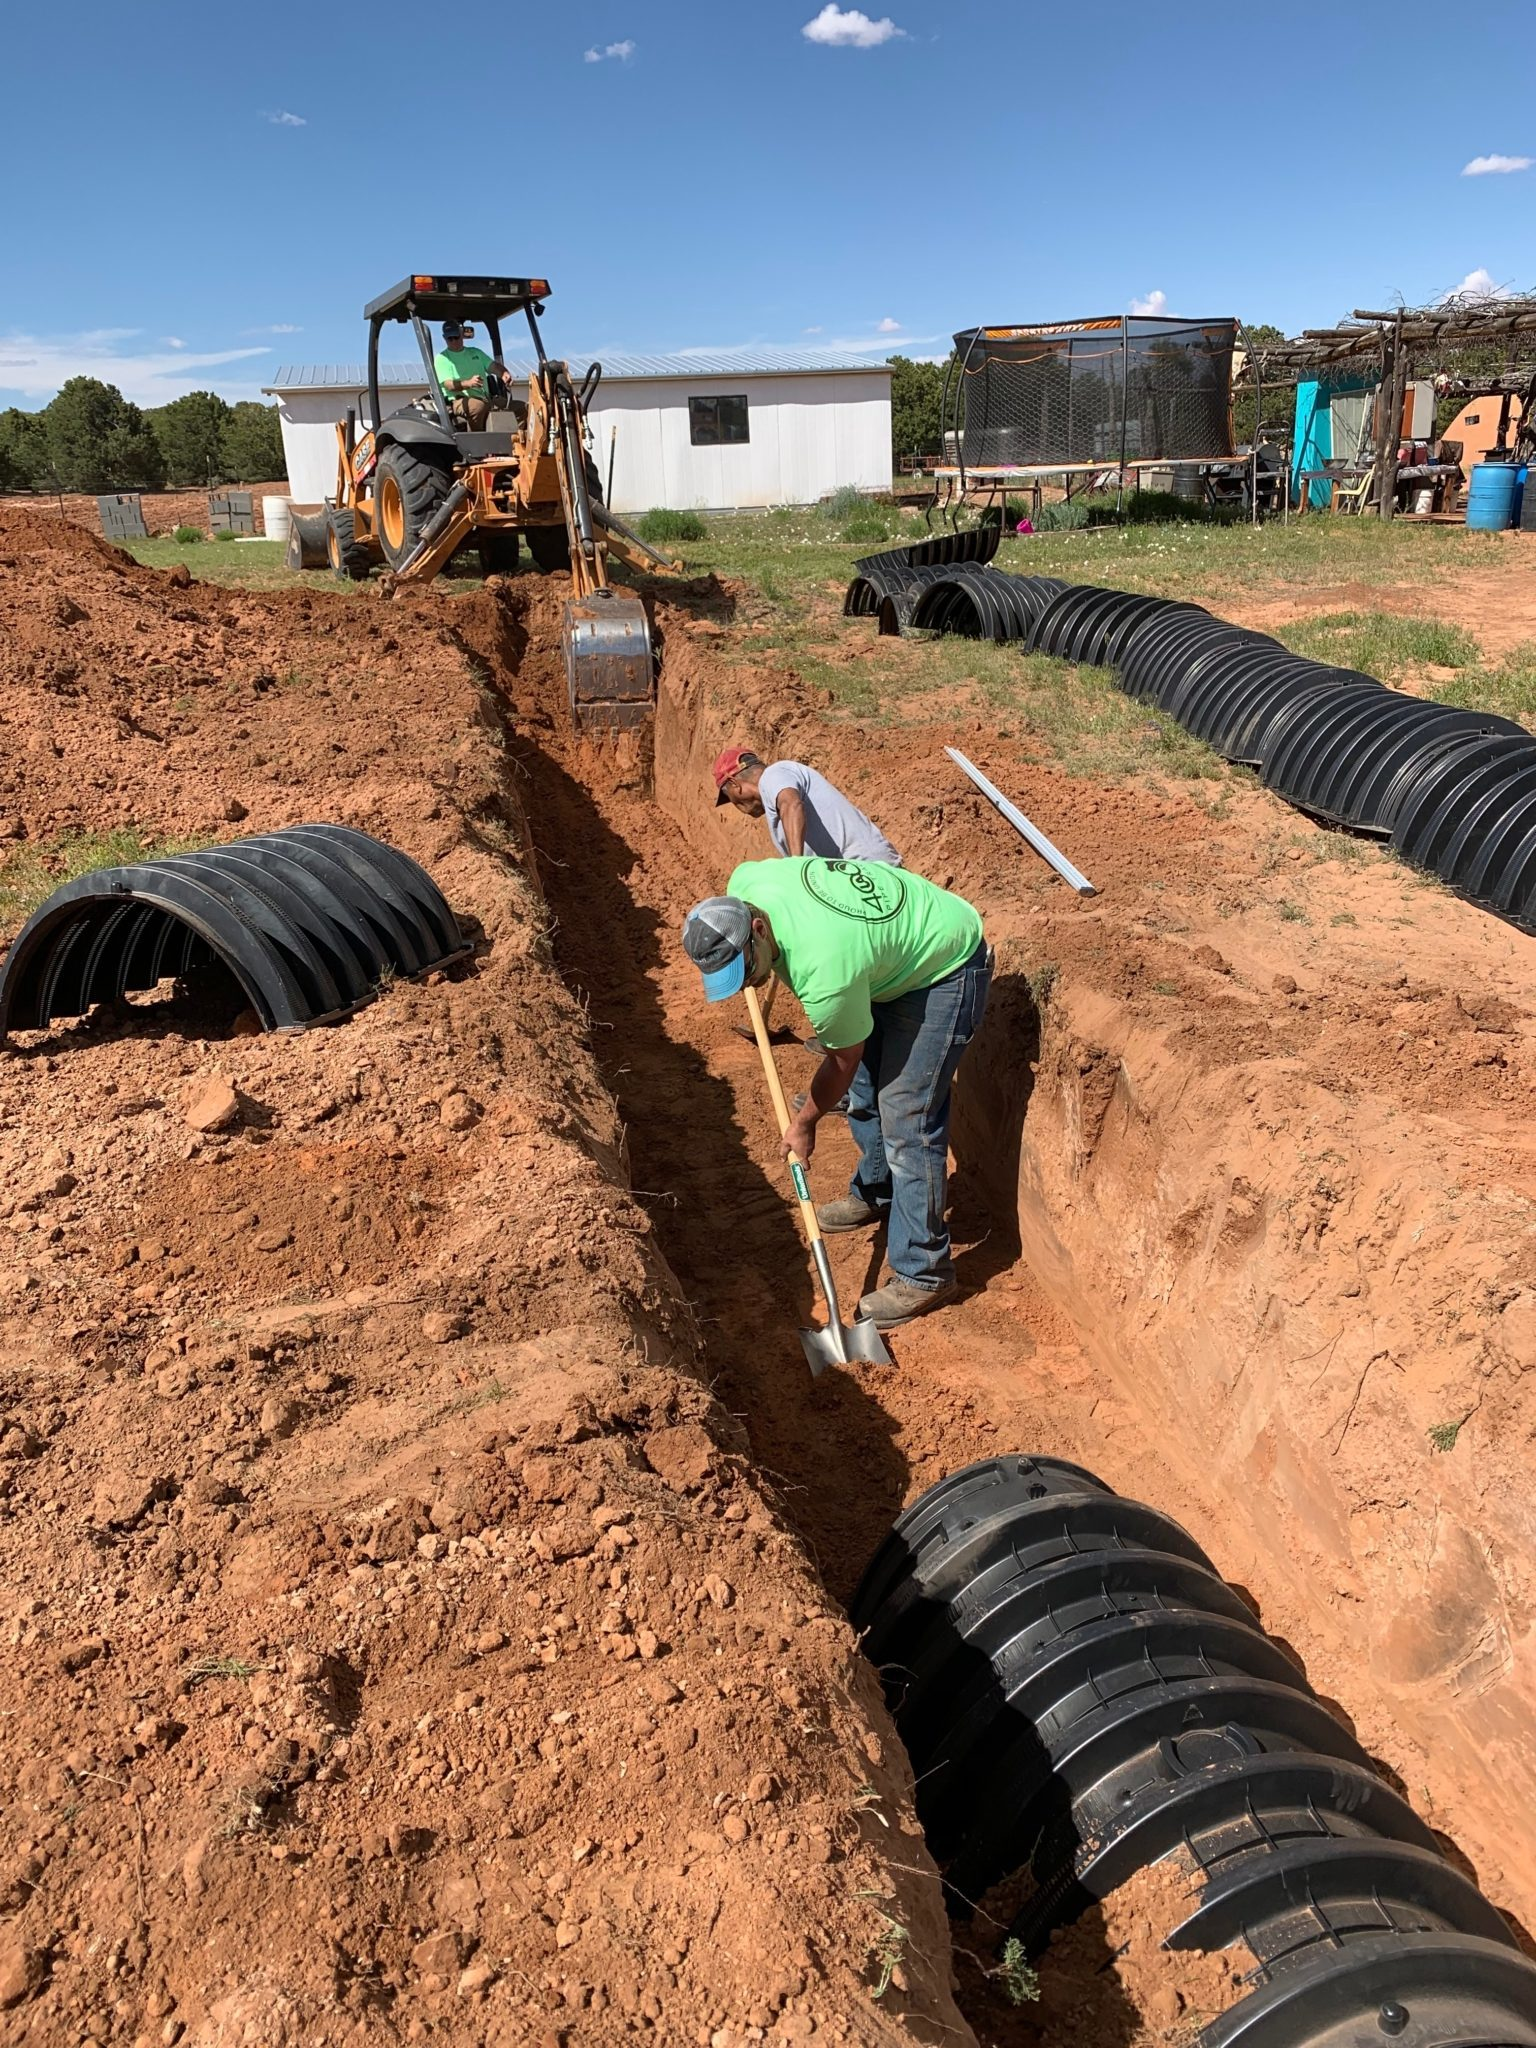 Volunteers work on installing a septic system at a home. The family of six living in the home had been relying solely on an outhouse located about 70 yards away.